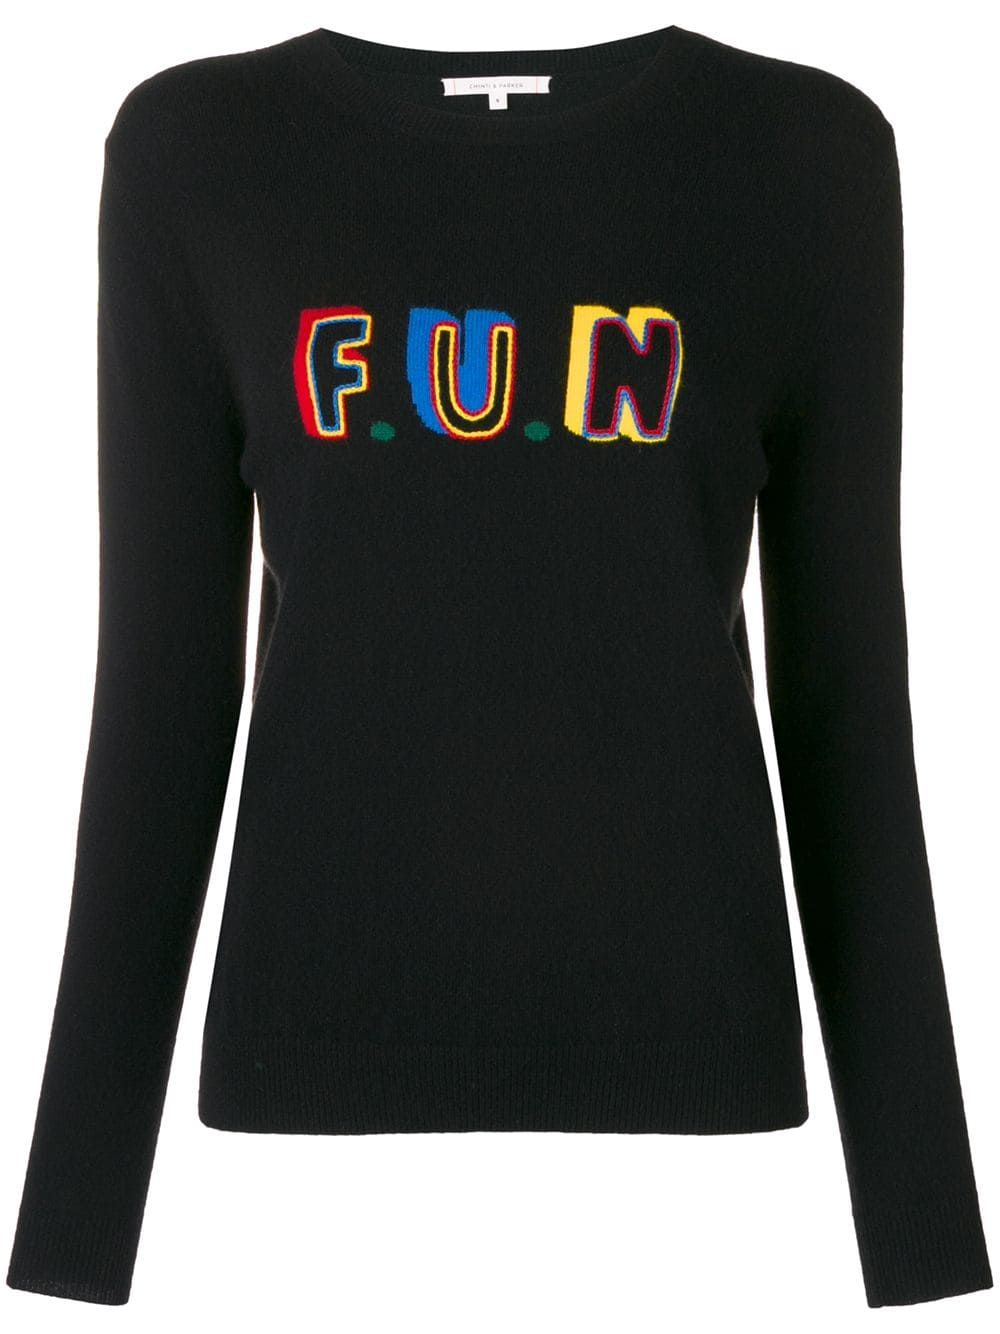 Chinti & Parker slogan fitted sweater Black | Sweaters